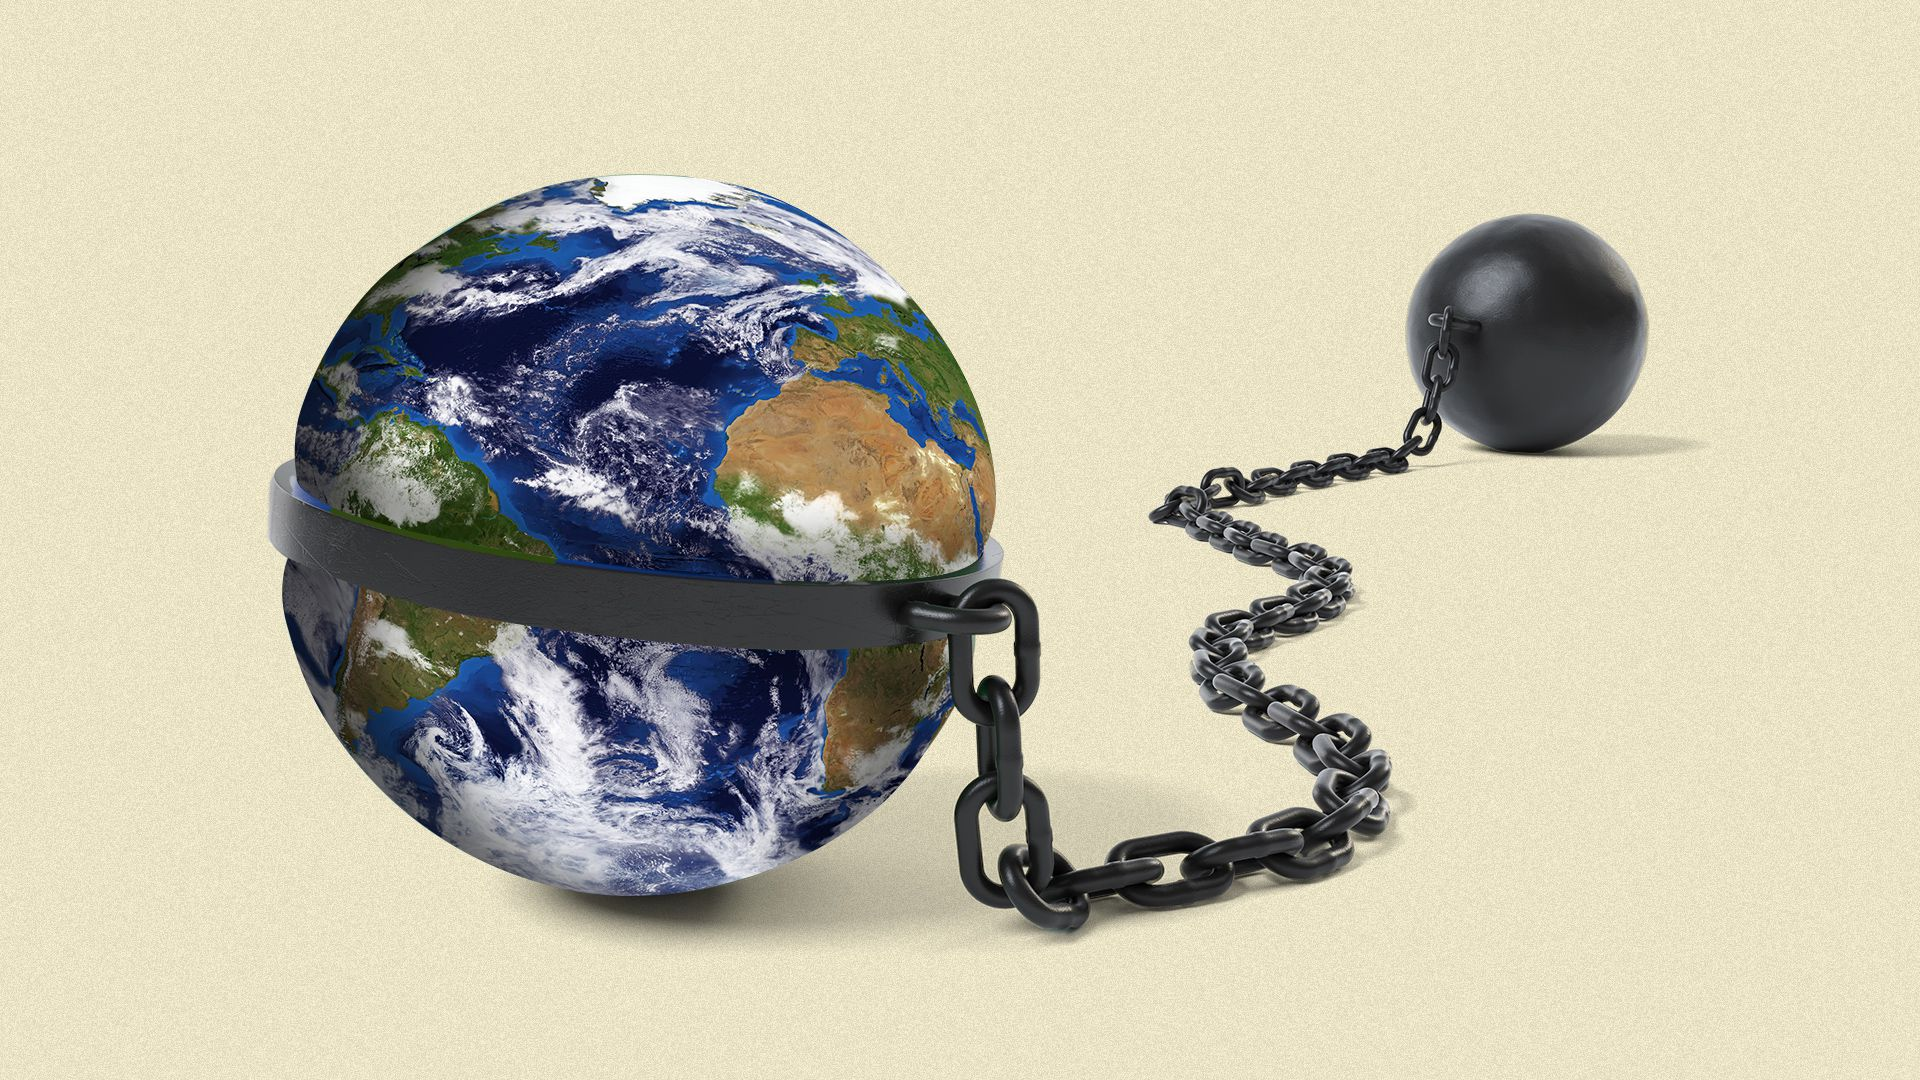 Illustration of the Earth with a ball and chain, chained to it.